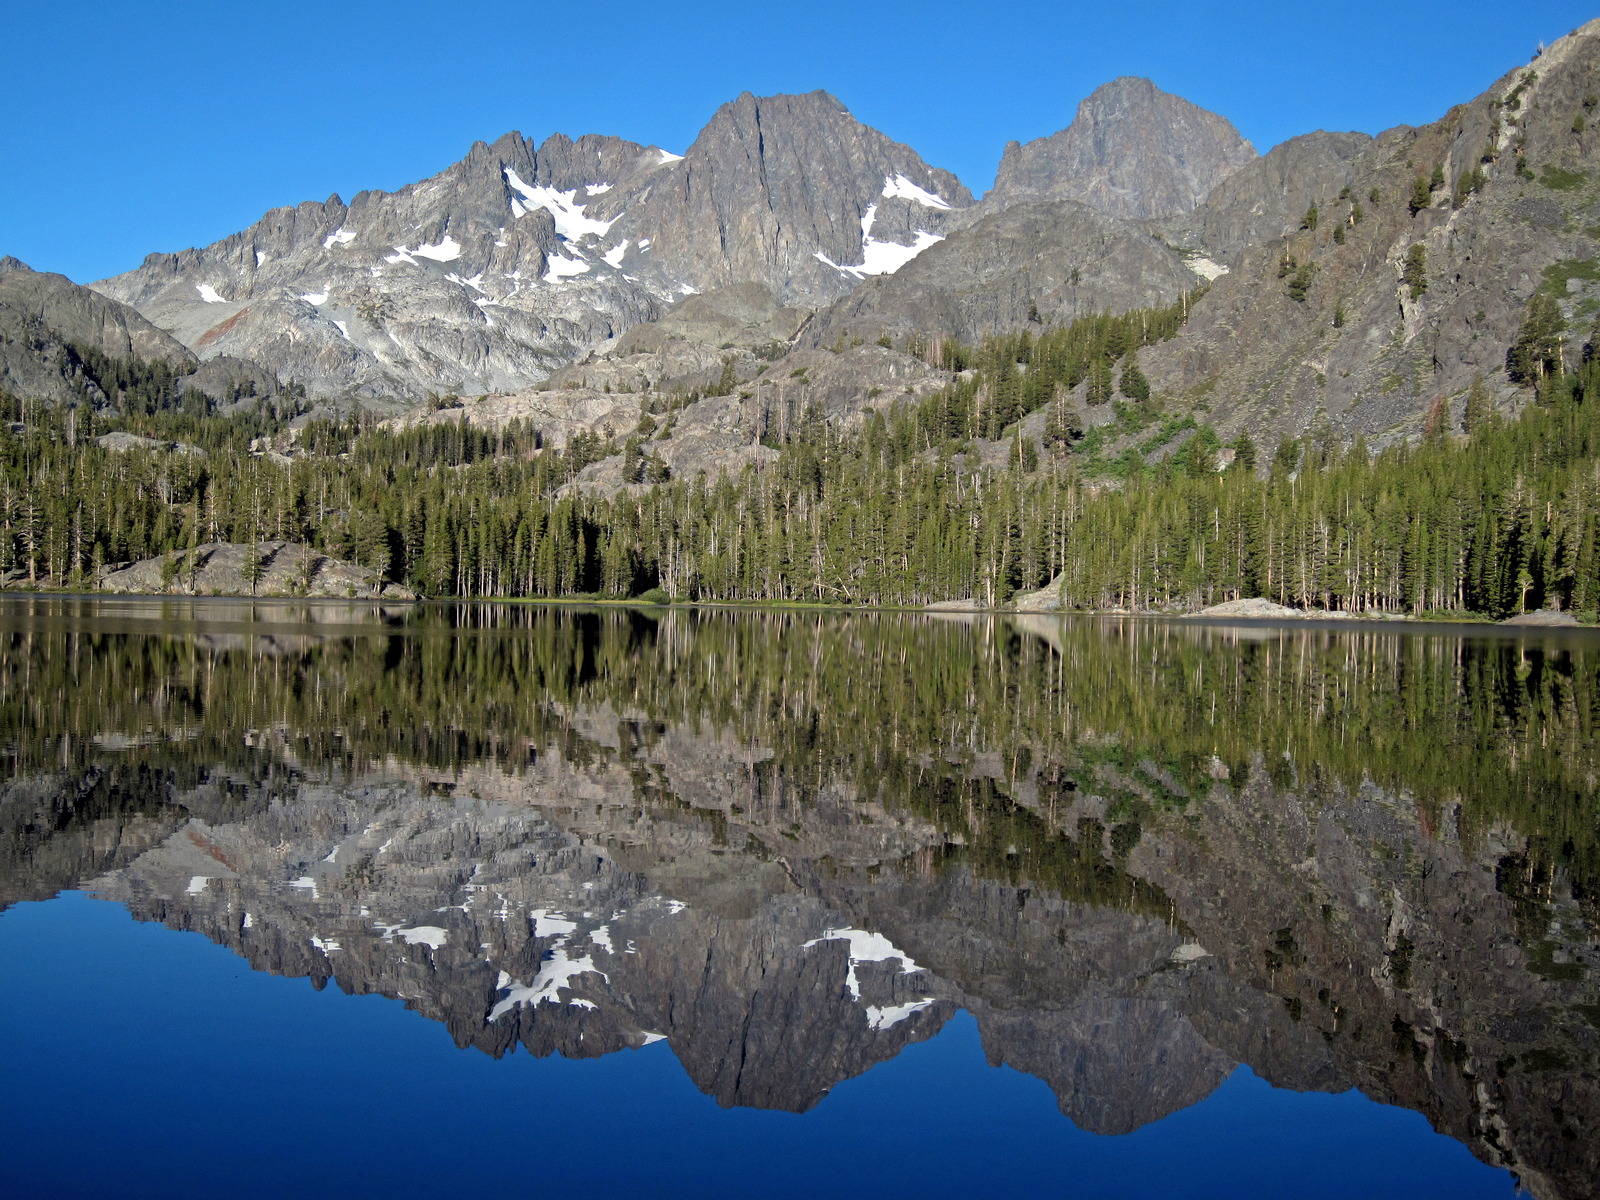 Mount Ritter and Banner Peak, reflected on Shadow Lake, Ansel Adams Wilderness, CA